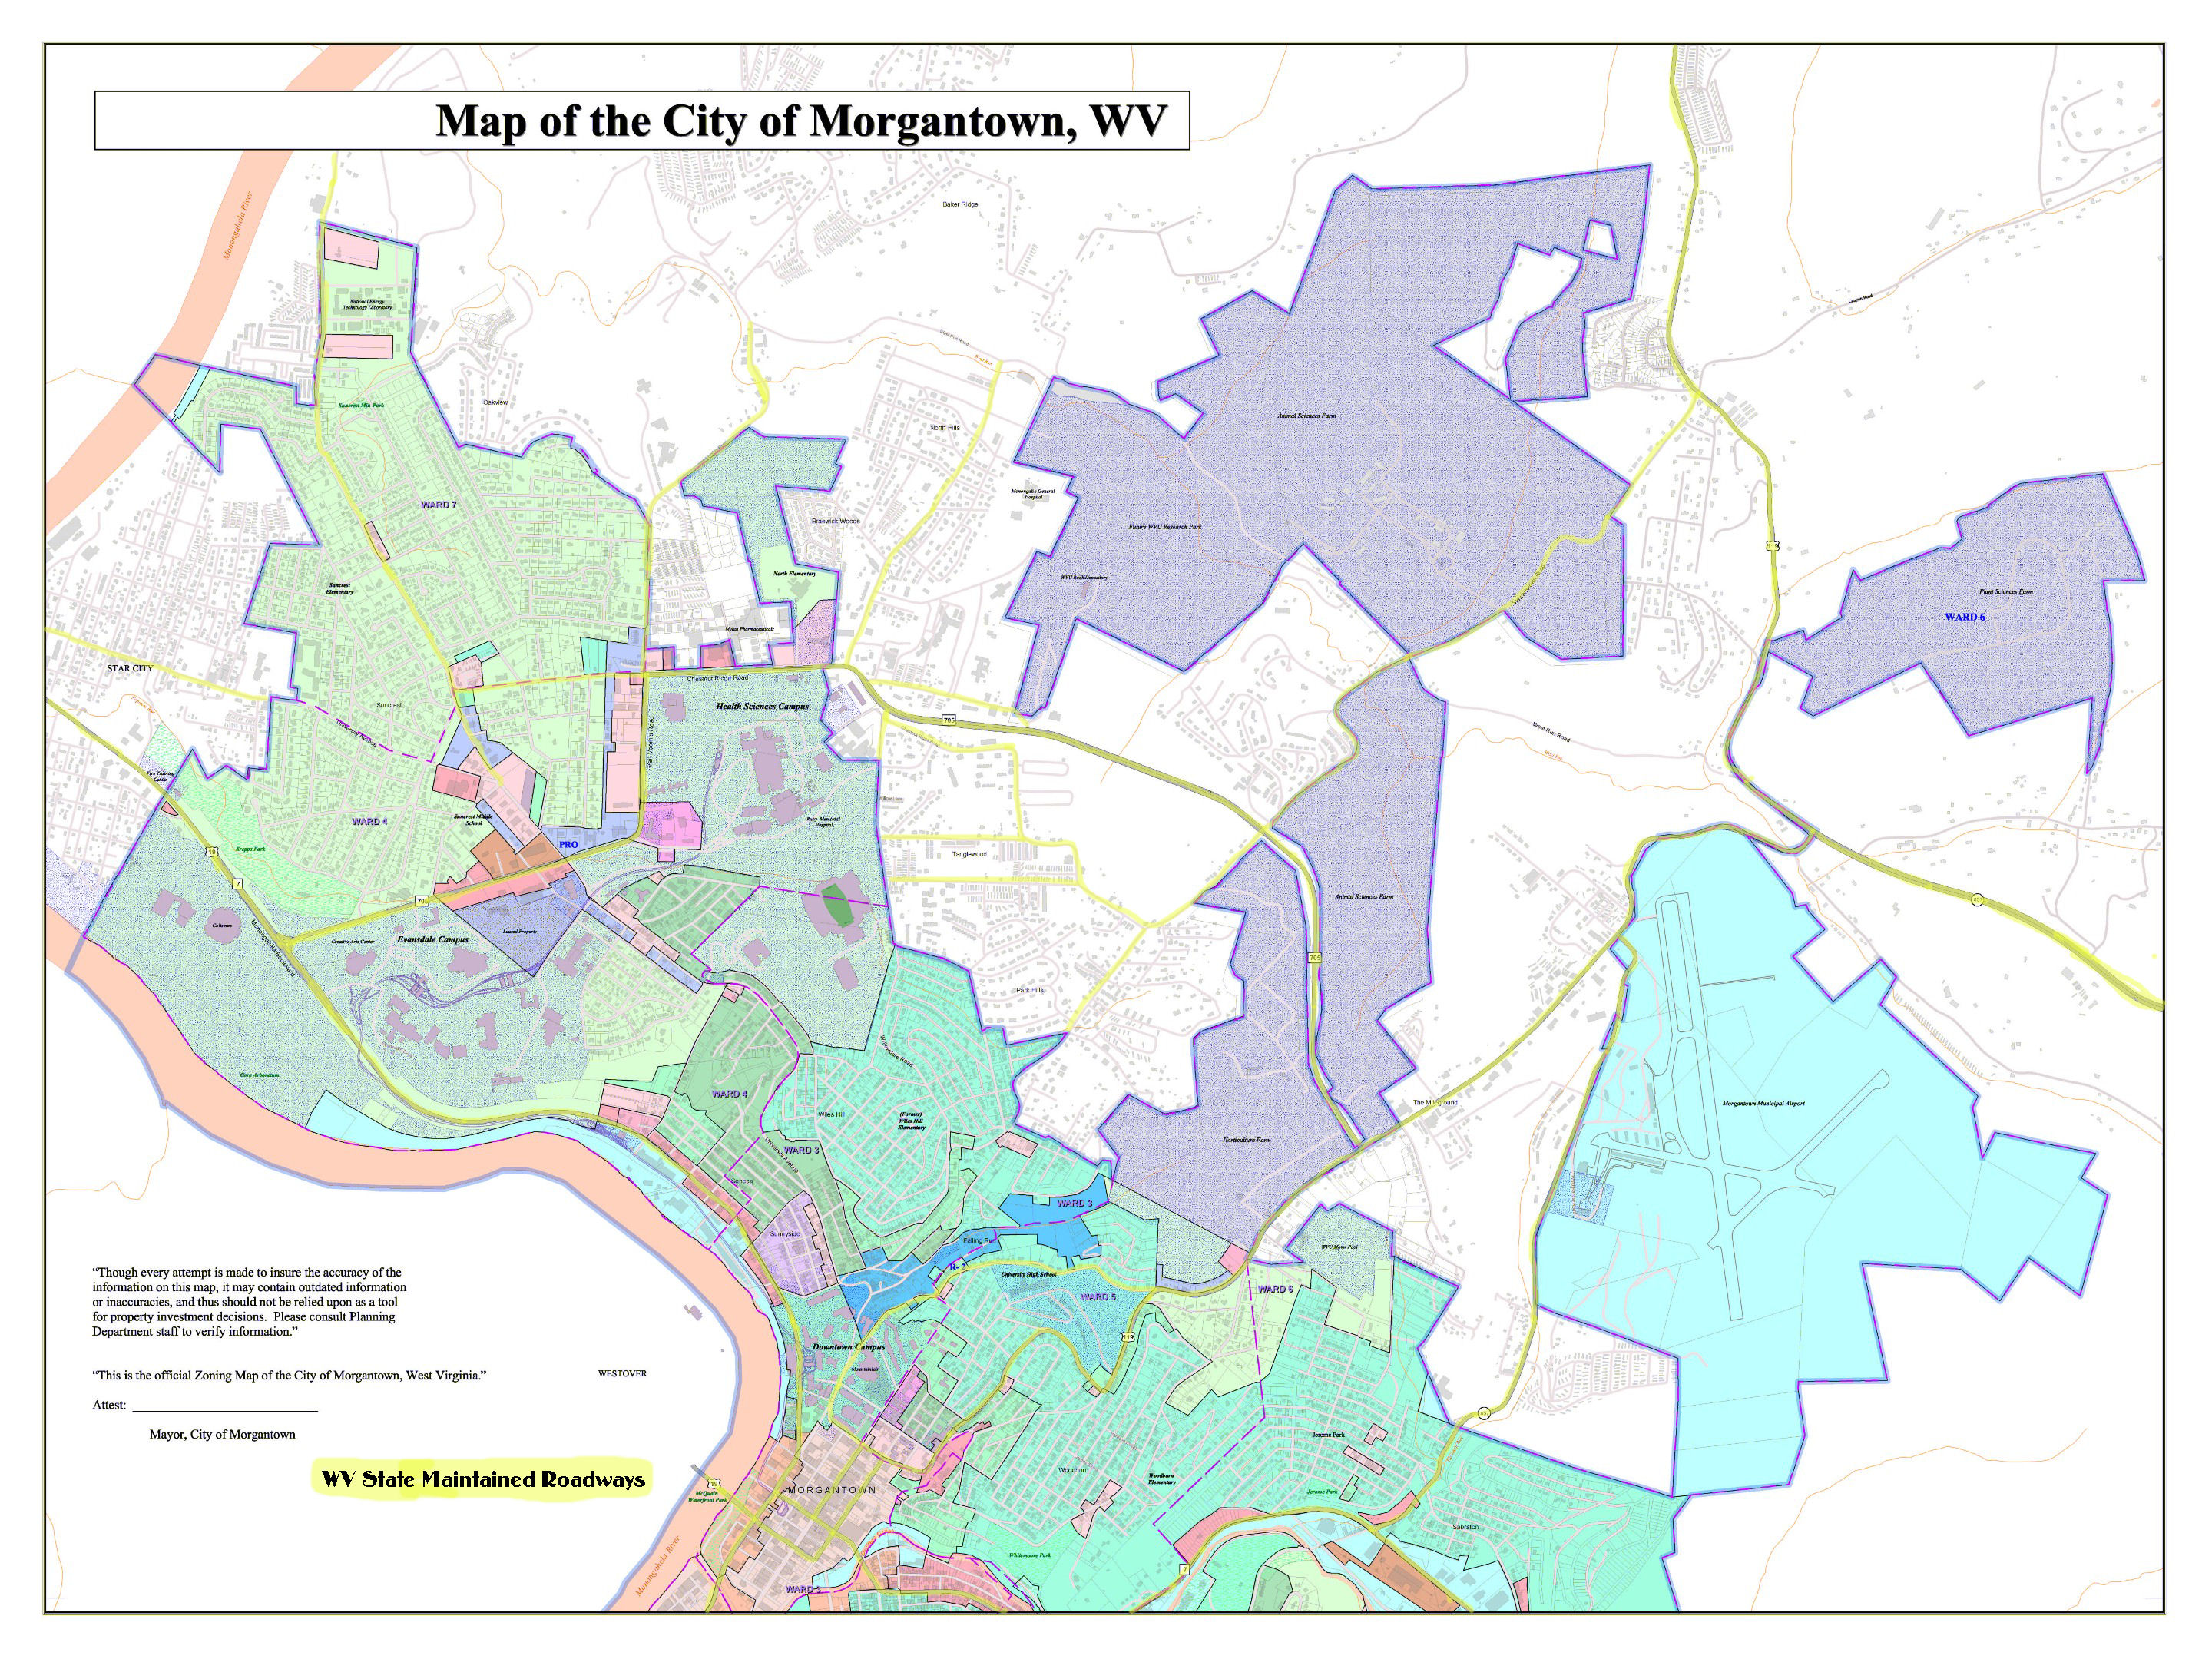 City of Morgantown West Virginia Zoning Map Morgantown West